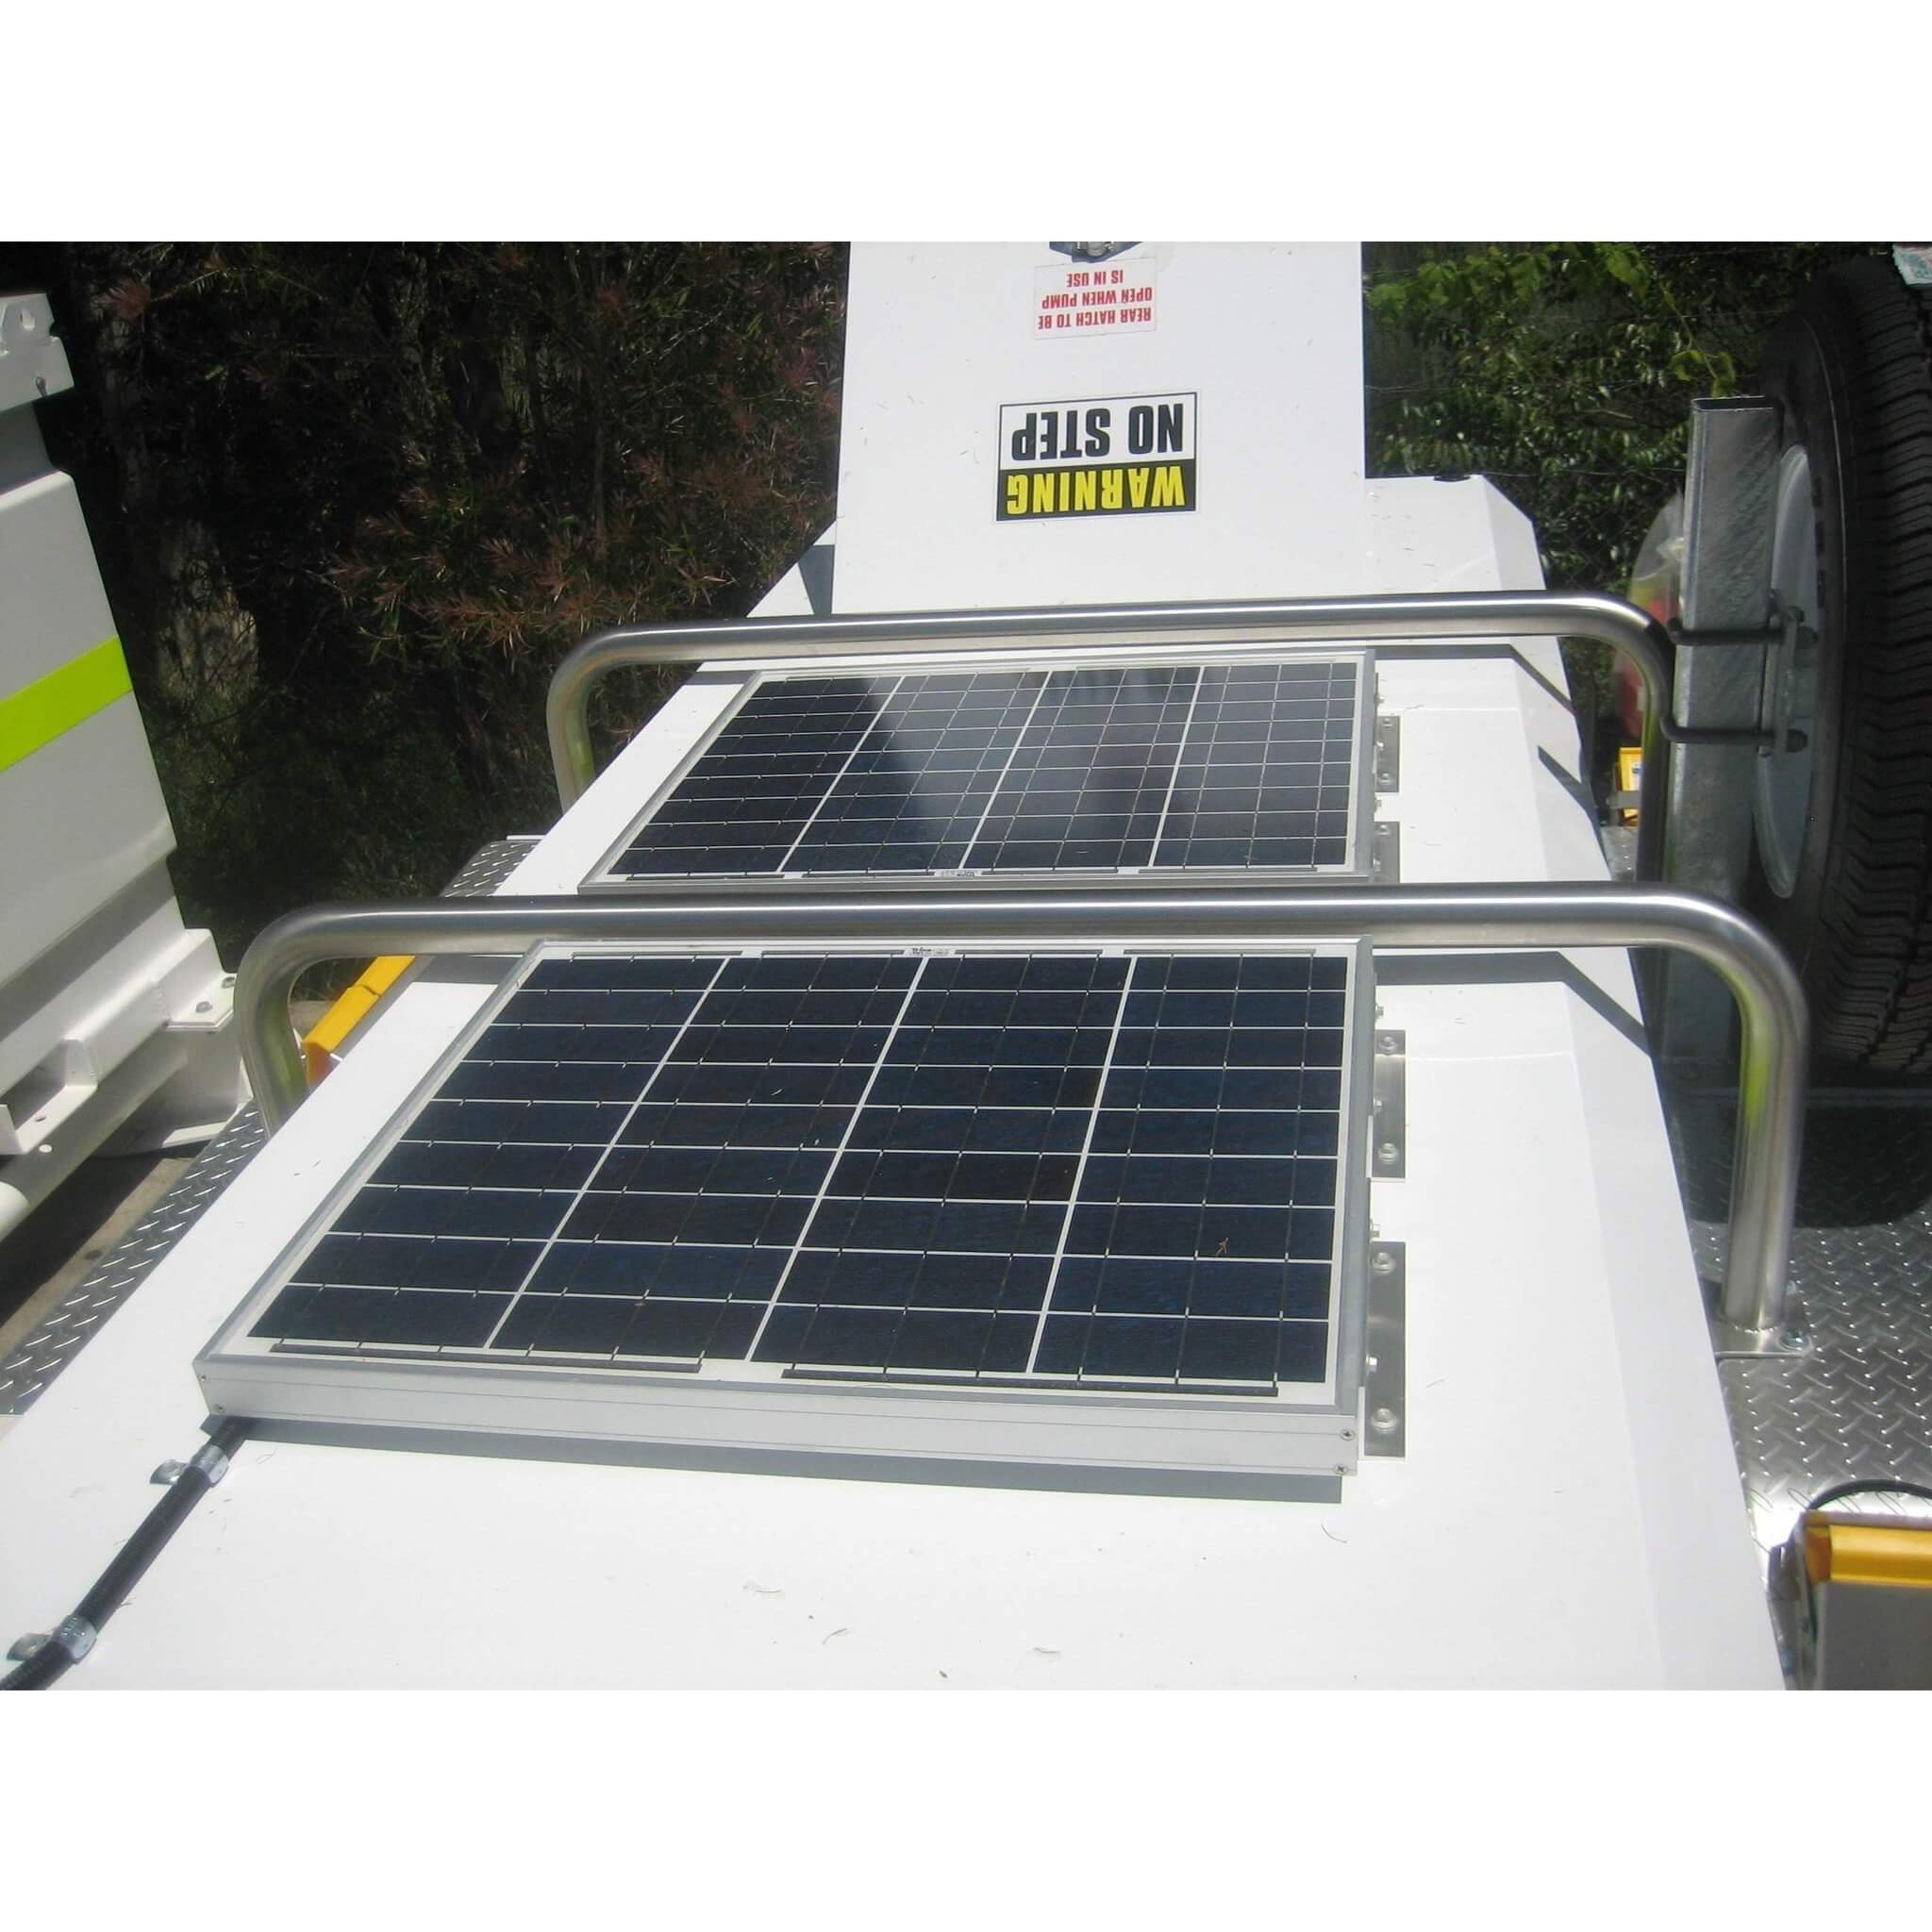 Diesel Fuel Trailer with Solar Panels – PETRO Industrial